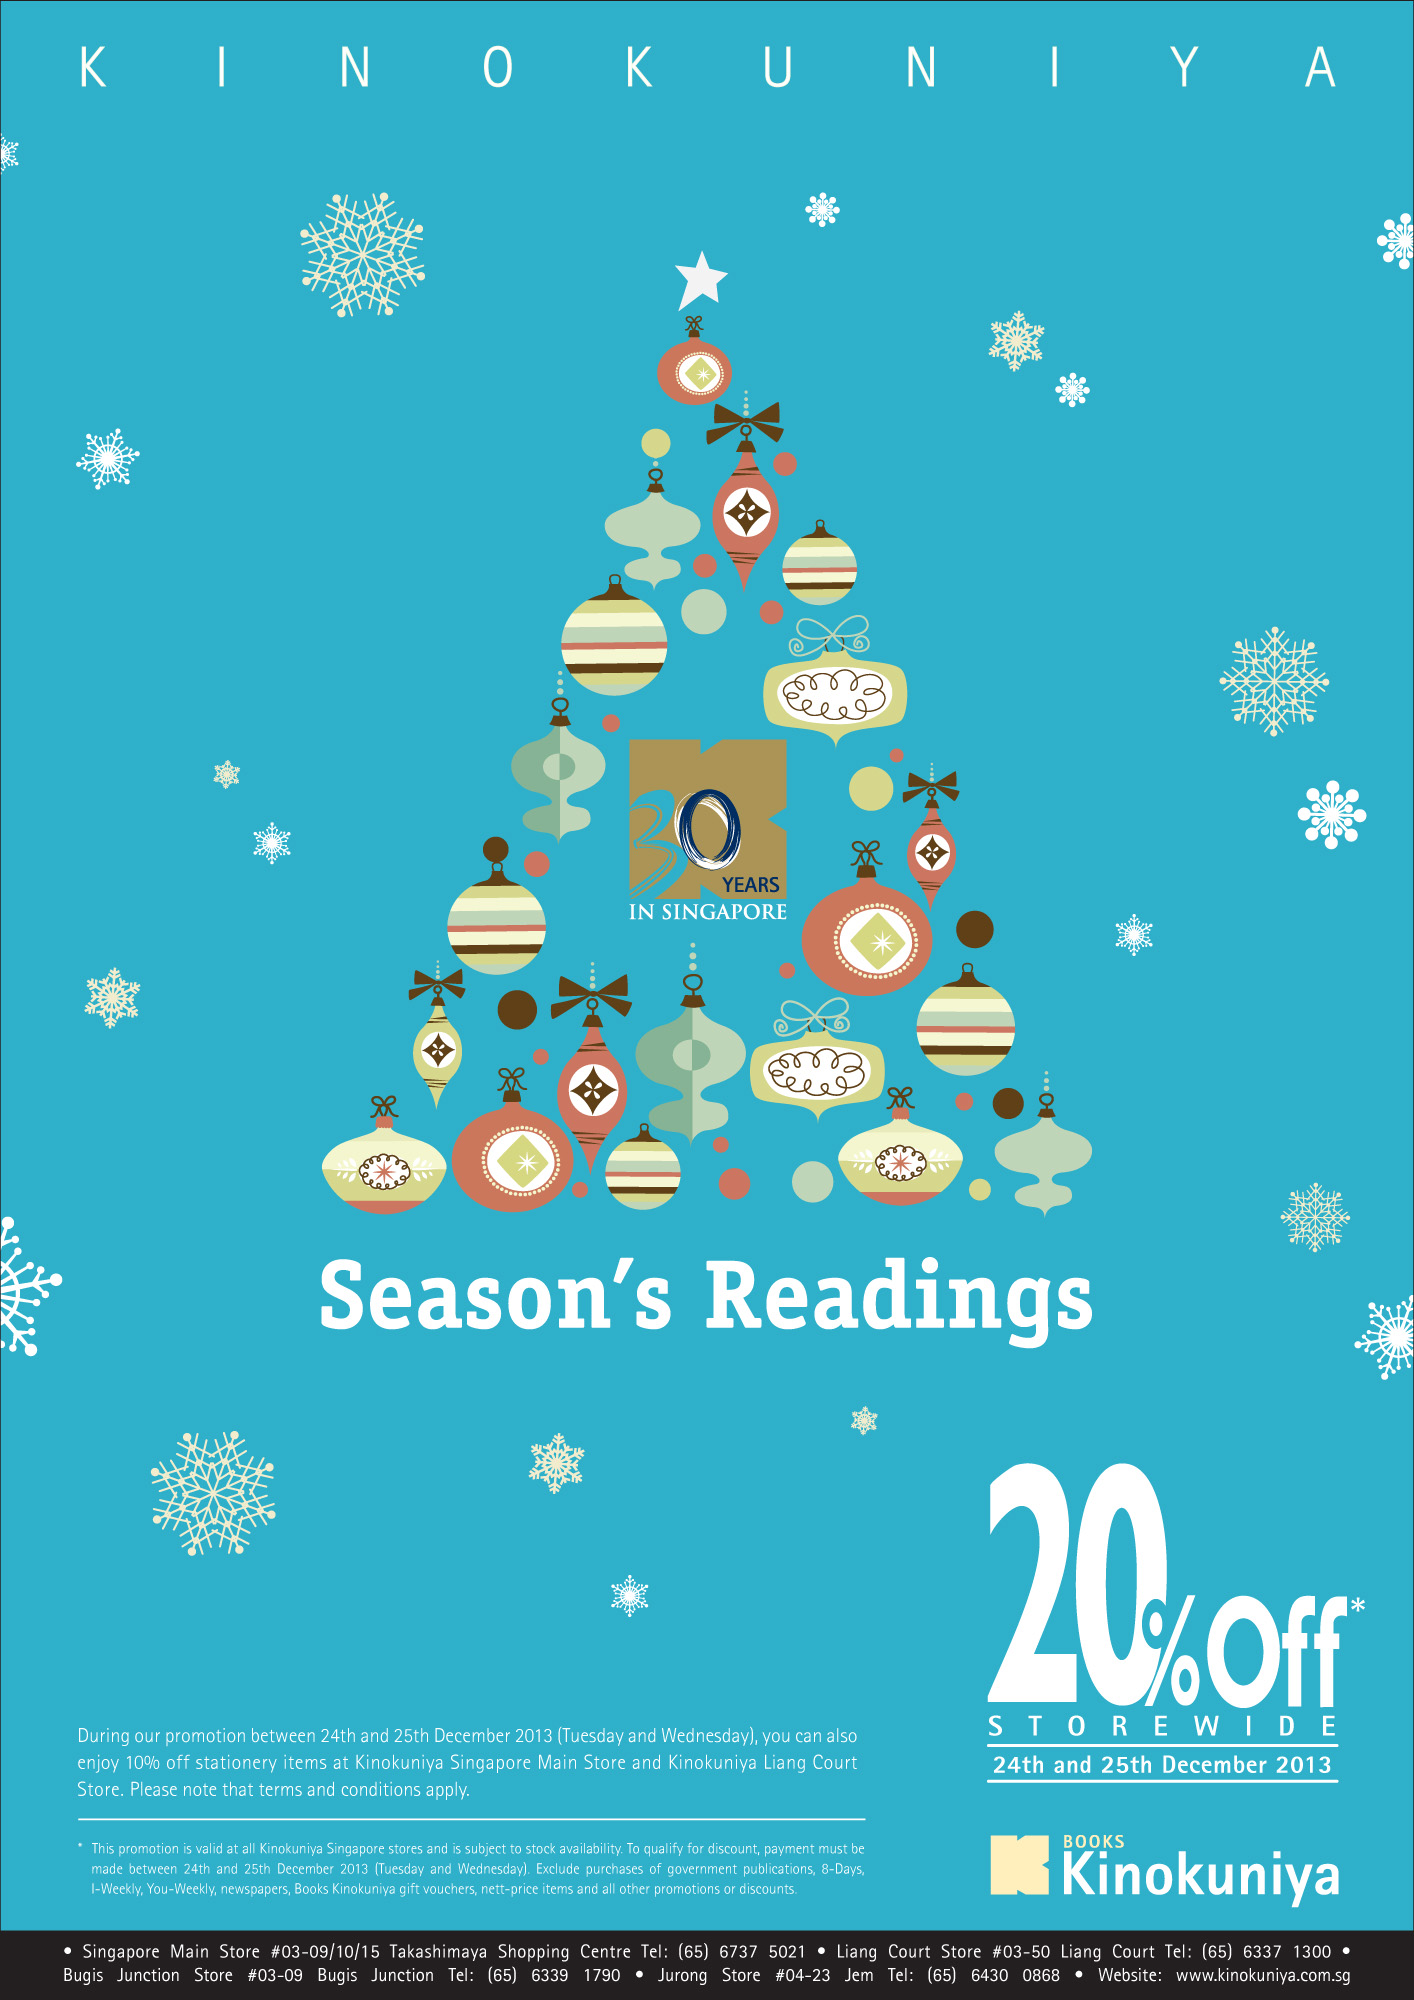 Kinokuniya Christmas Promotion 2013: 20% Storewide Discount For All Customers